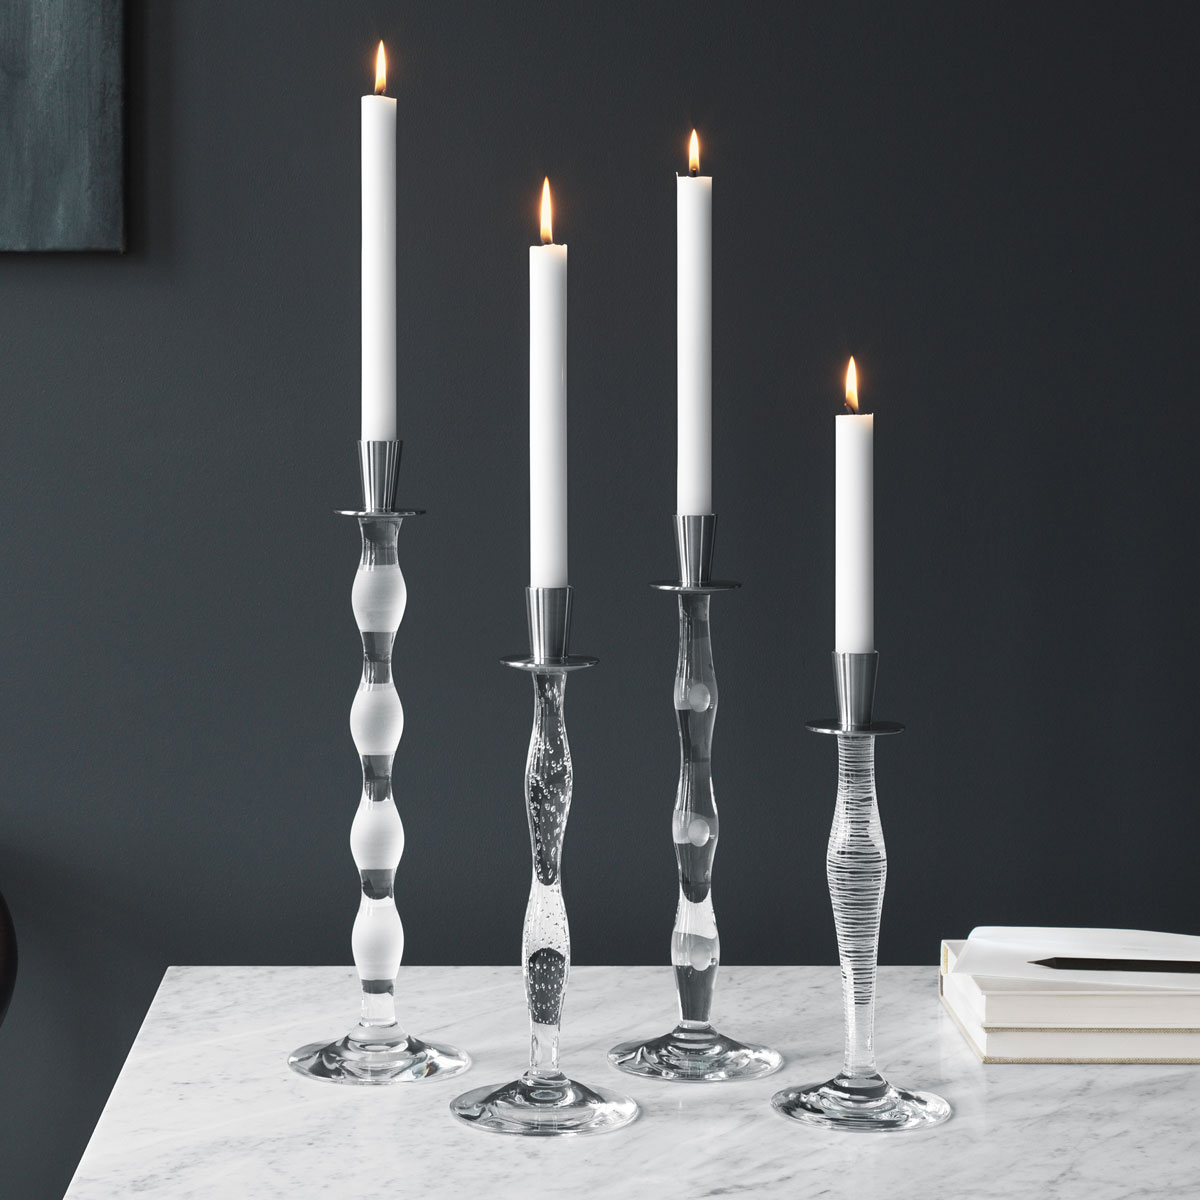 Orrefors Celeste Stripes Candlestick, Single